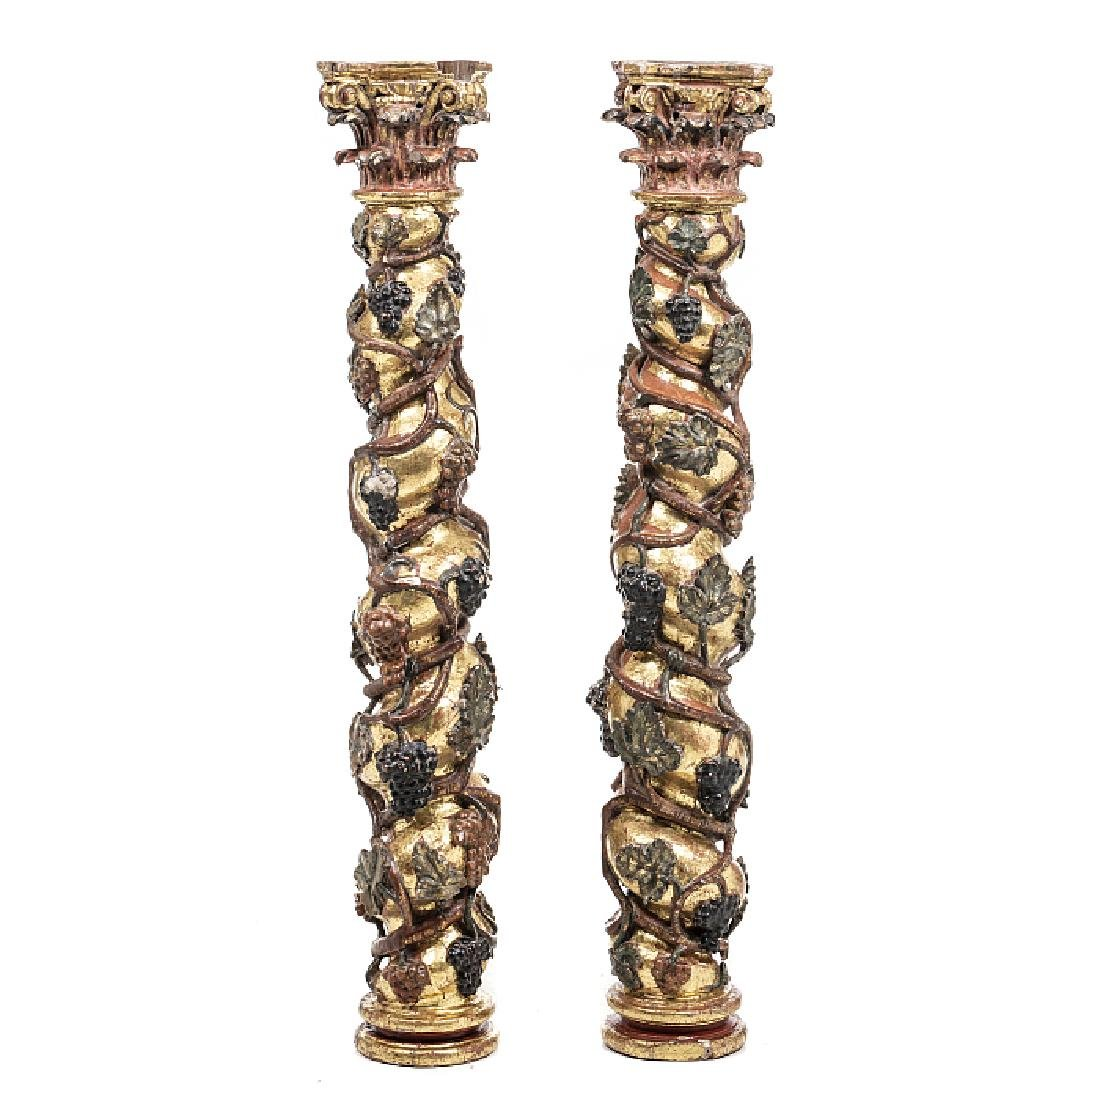 Pair of columns in carved wood